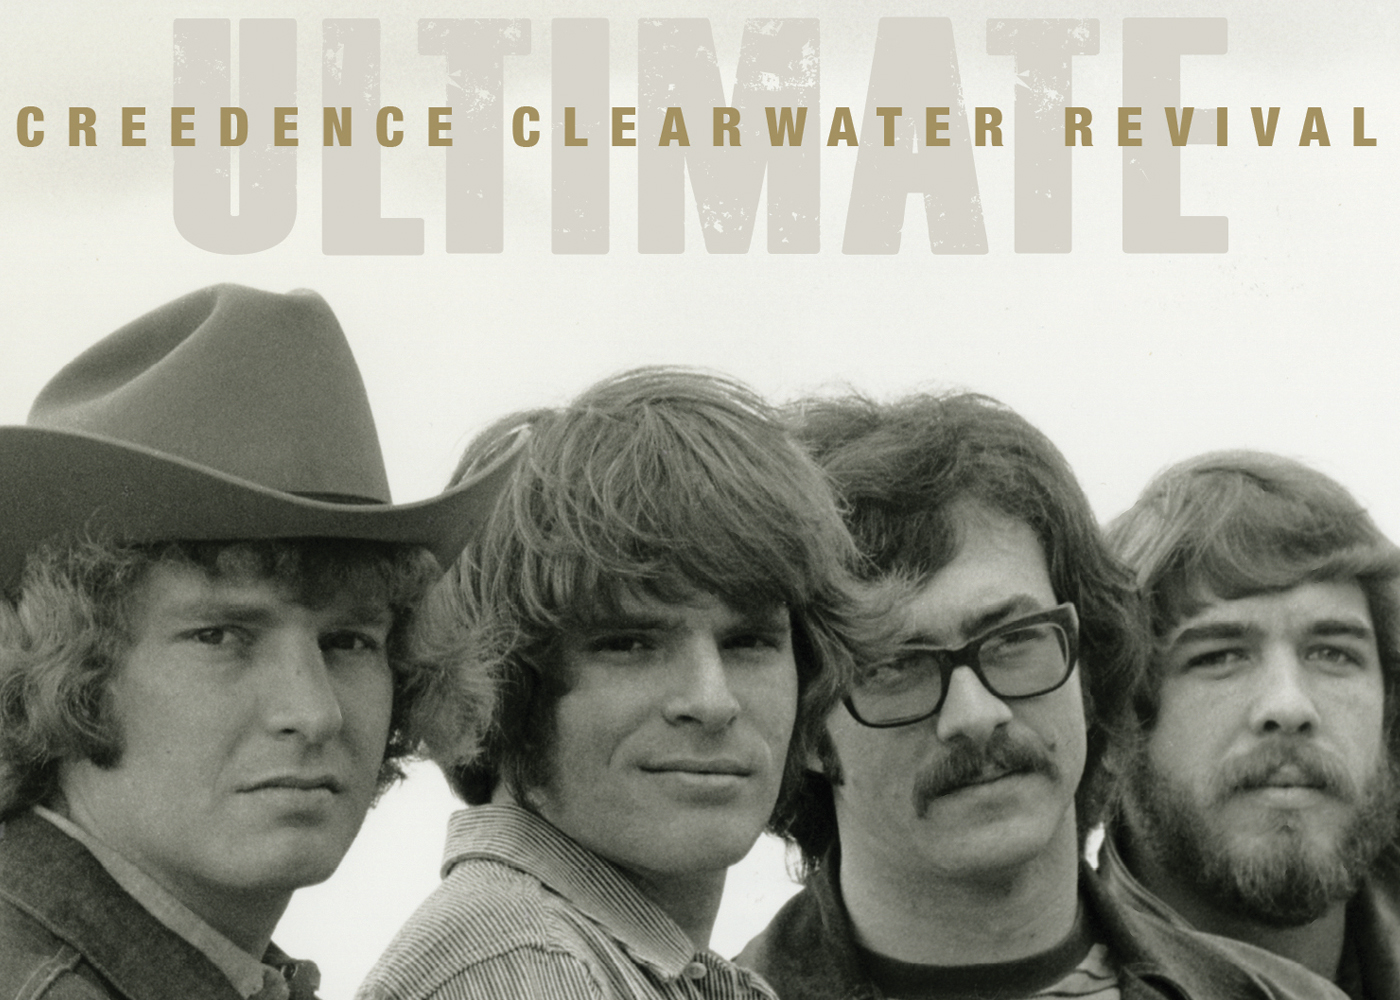 Charlie Sheen - Celebrities with HIV/AIDS - Pictures Creedence clearwater revival photos pictures